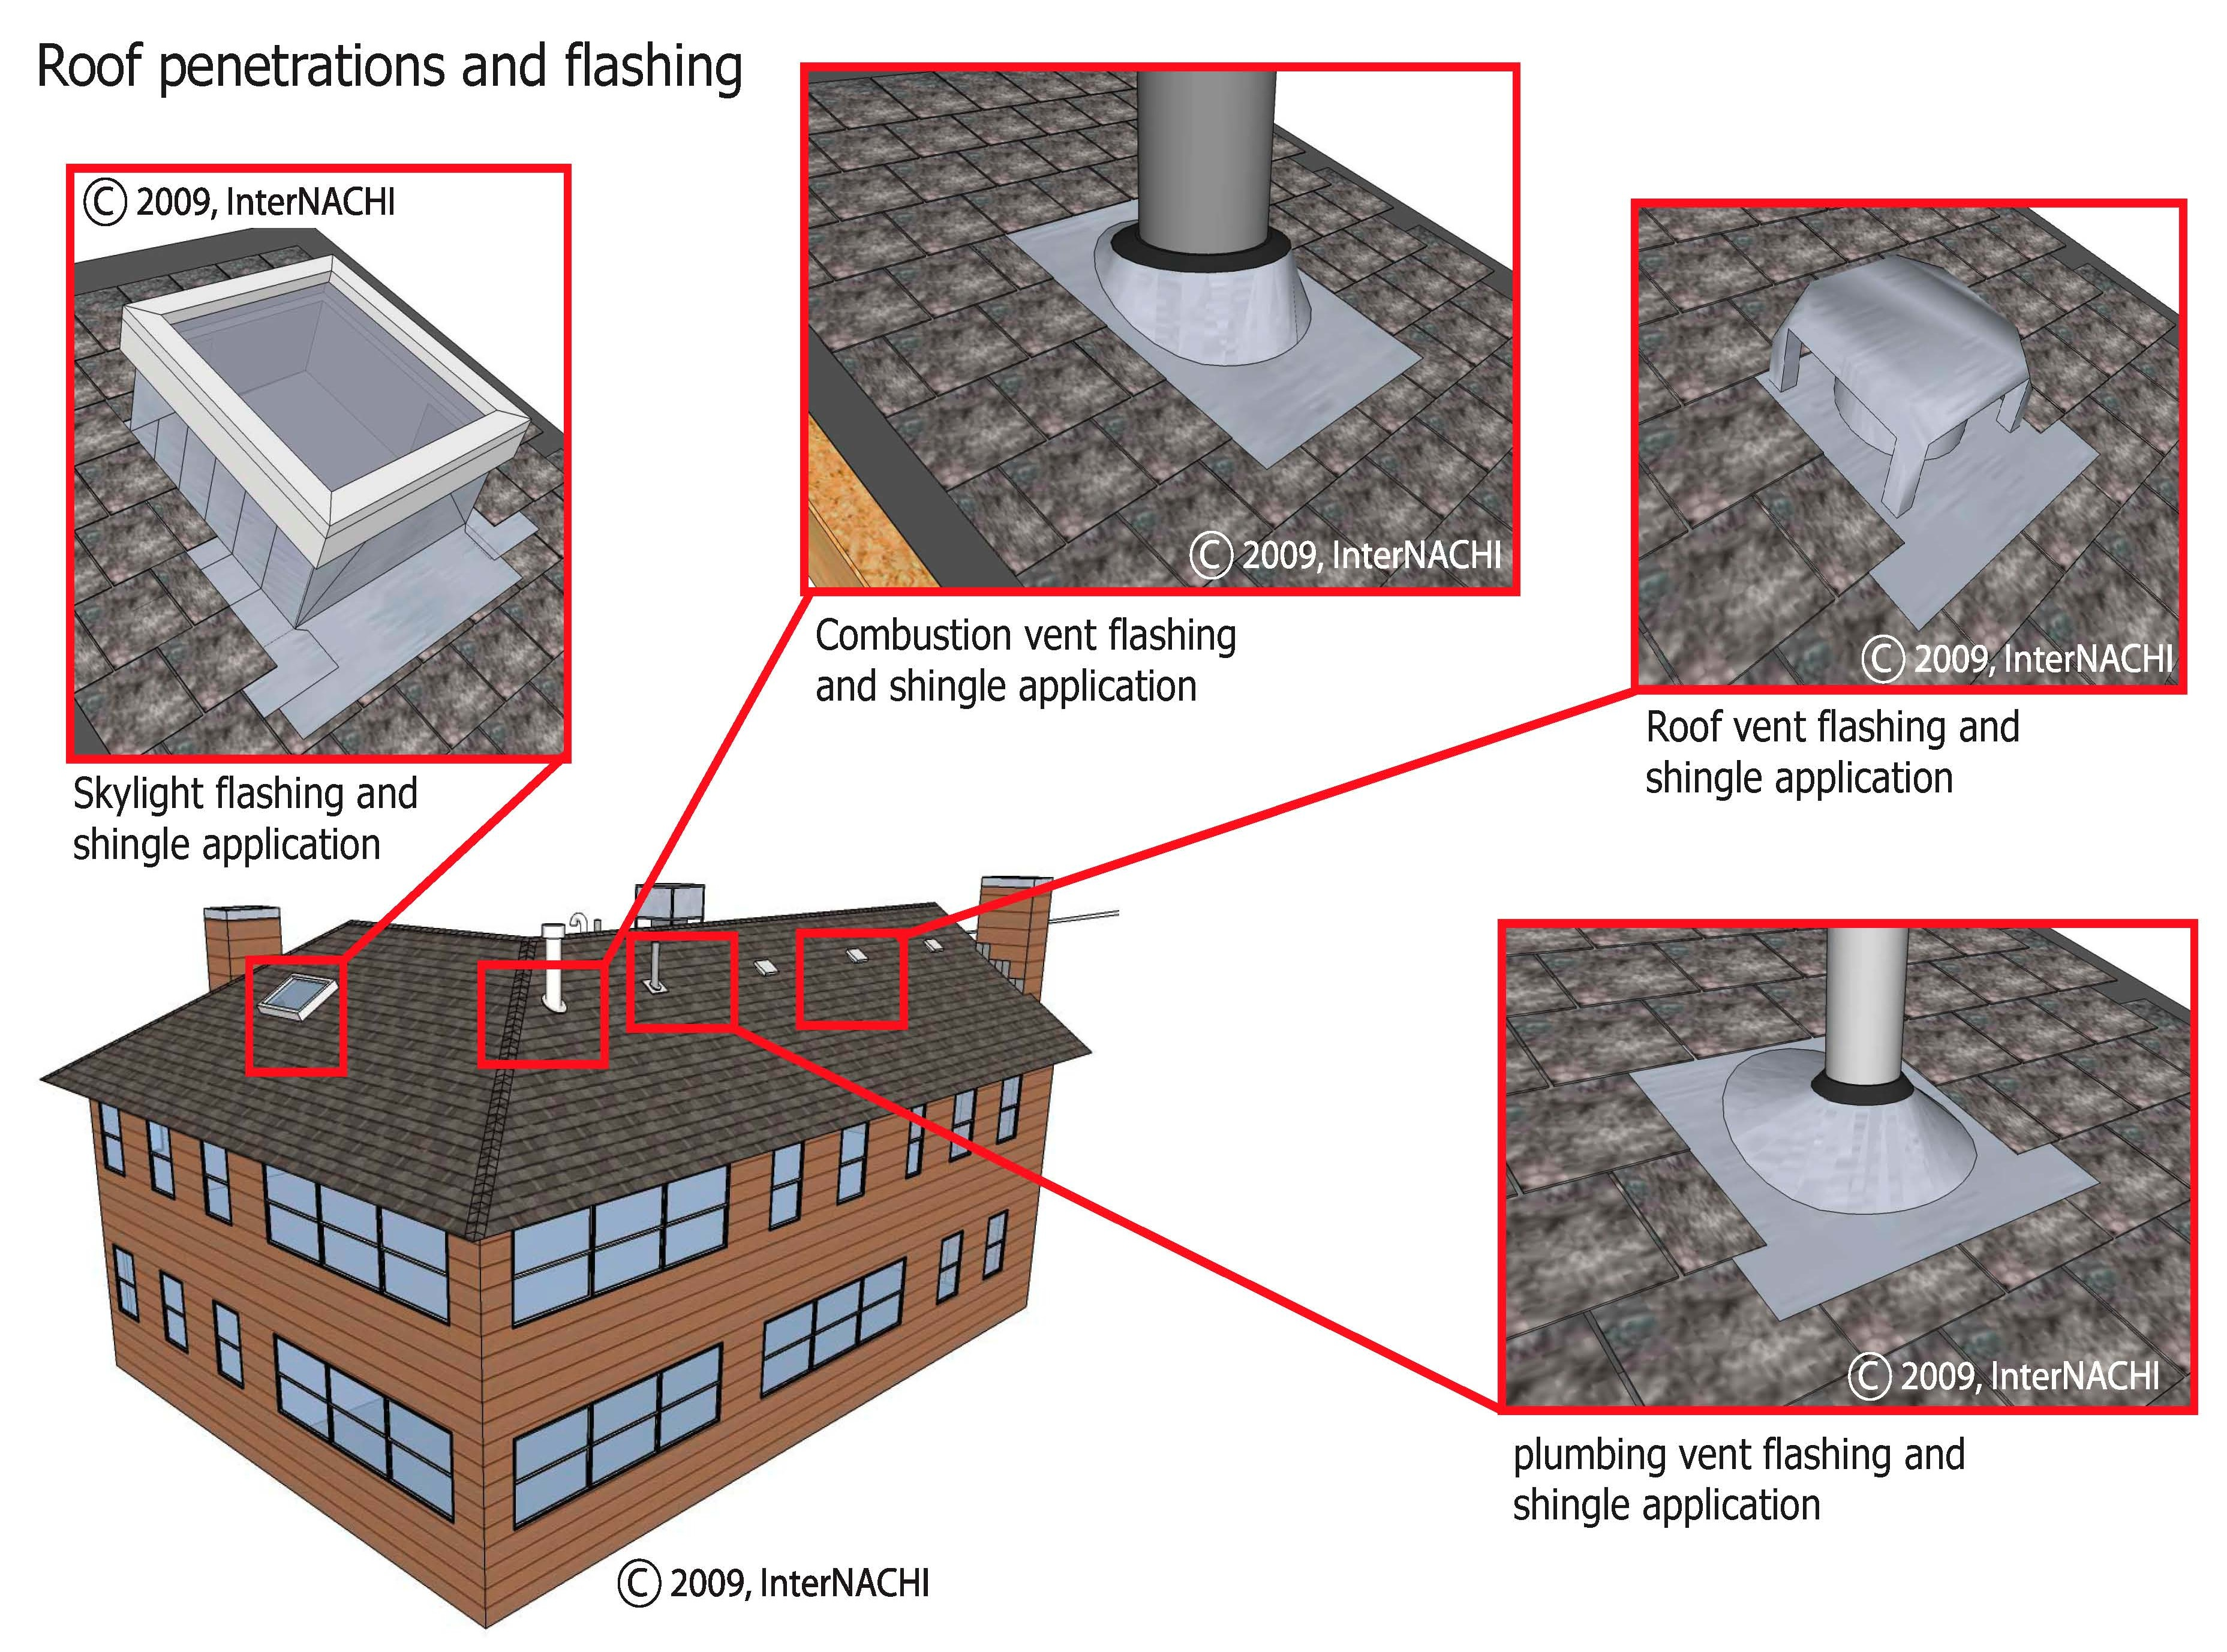 Roof penetrations and flashing.